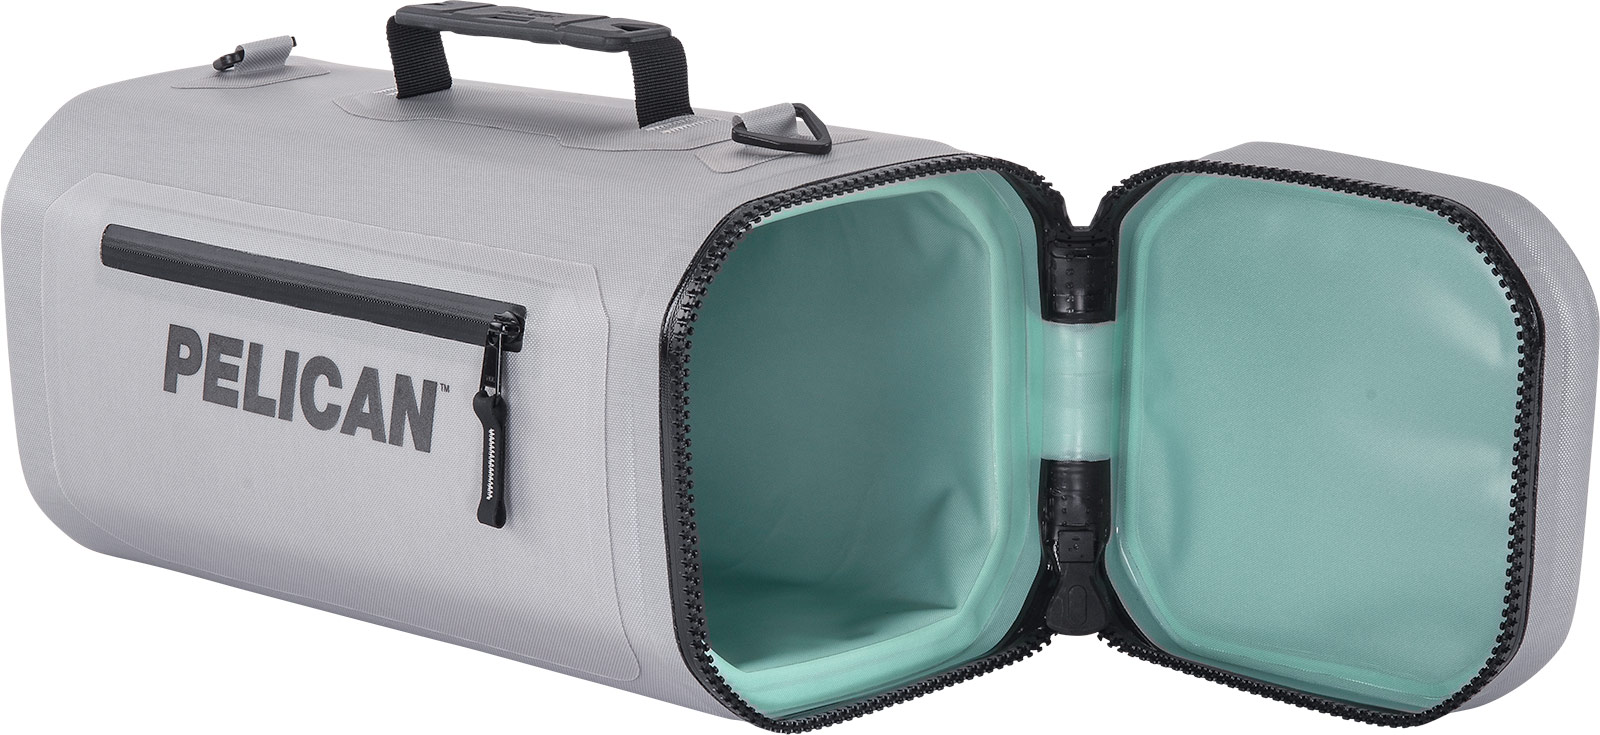 pelican water resistant durable soft cooler